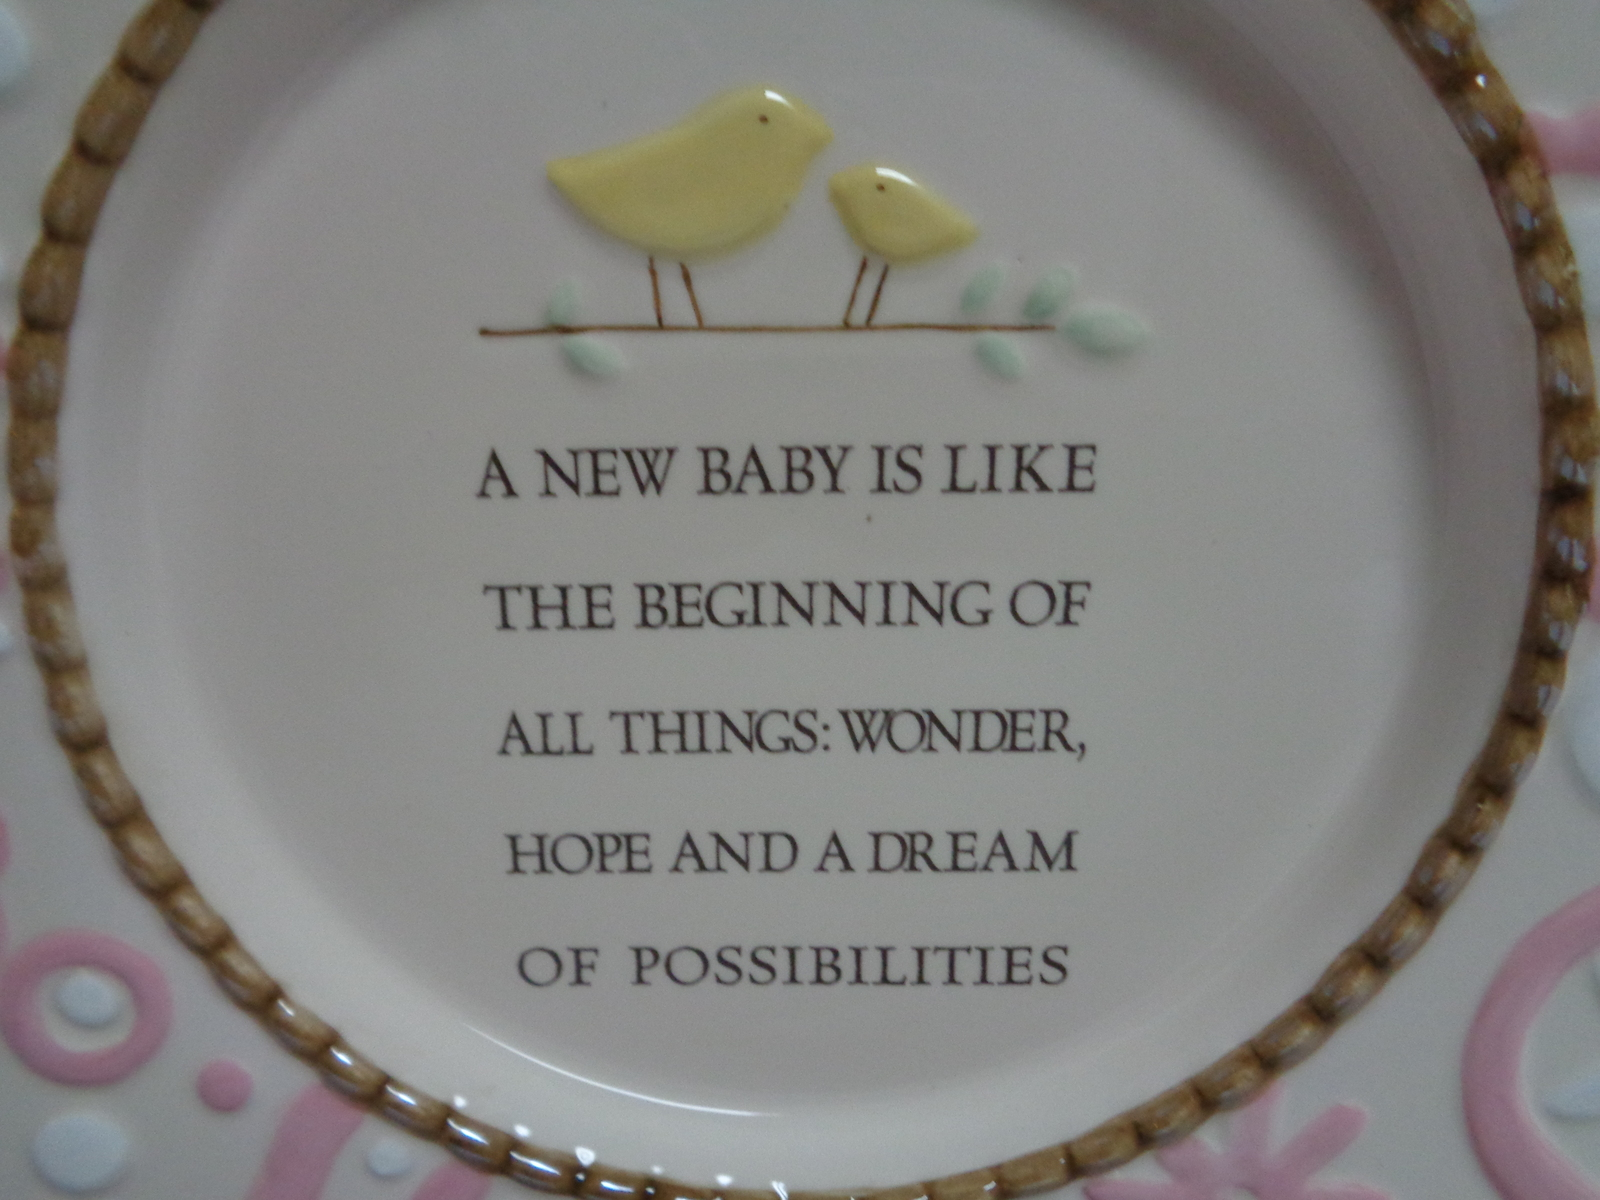 Grasslands Road Welcome New Baby Pink Plate Decor NIB